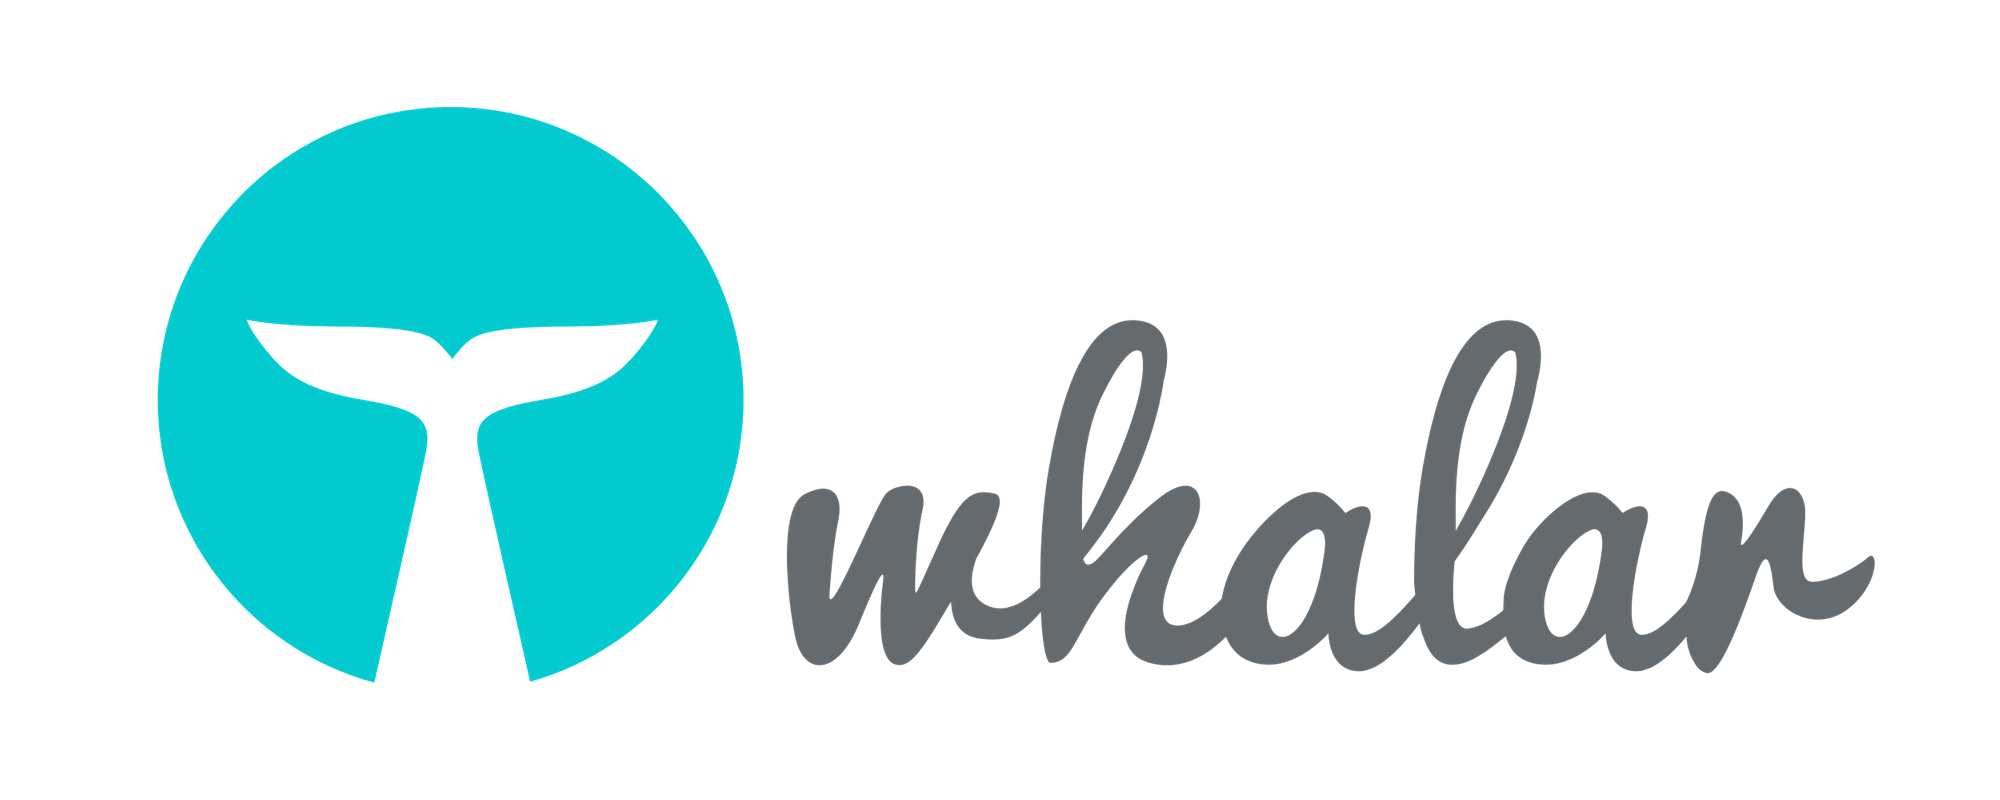 Whalar, a brand who sourced Directors and BTS Videographers for an ad spot shoot through CLLCTVE.